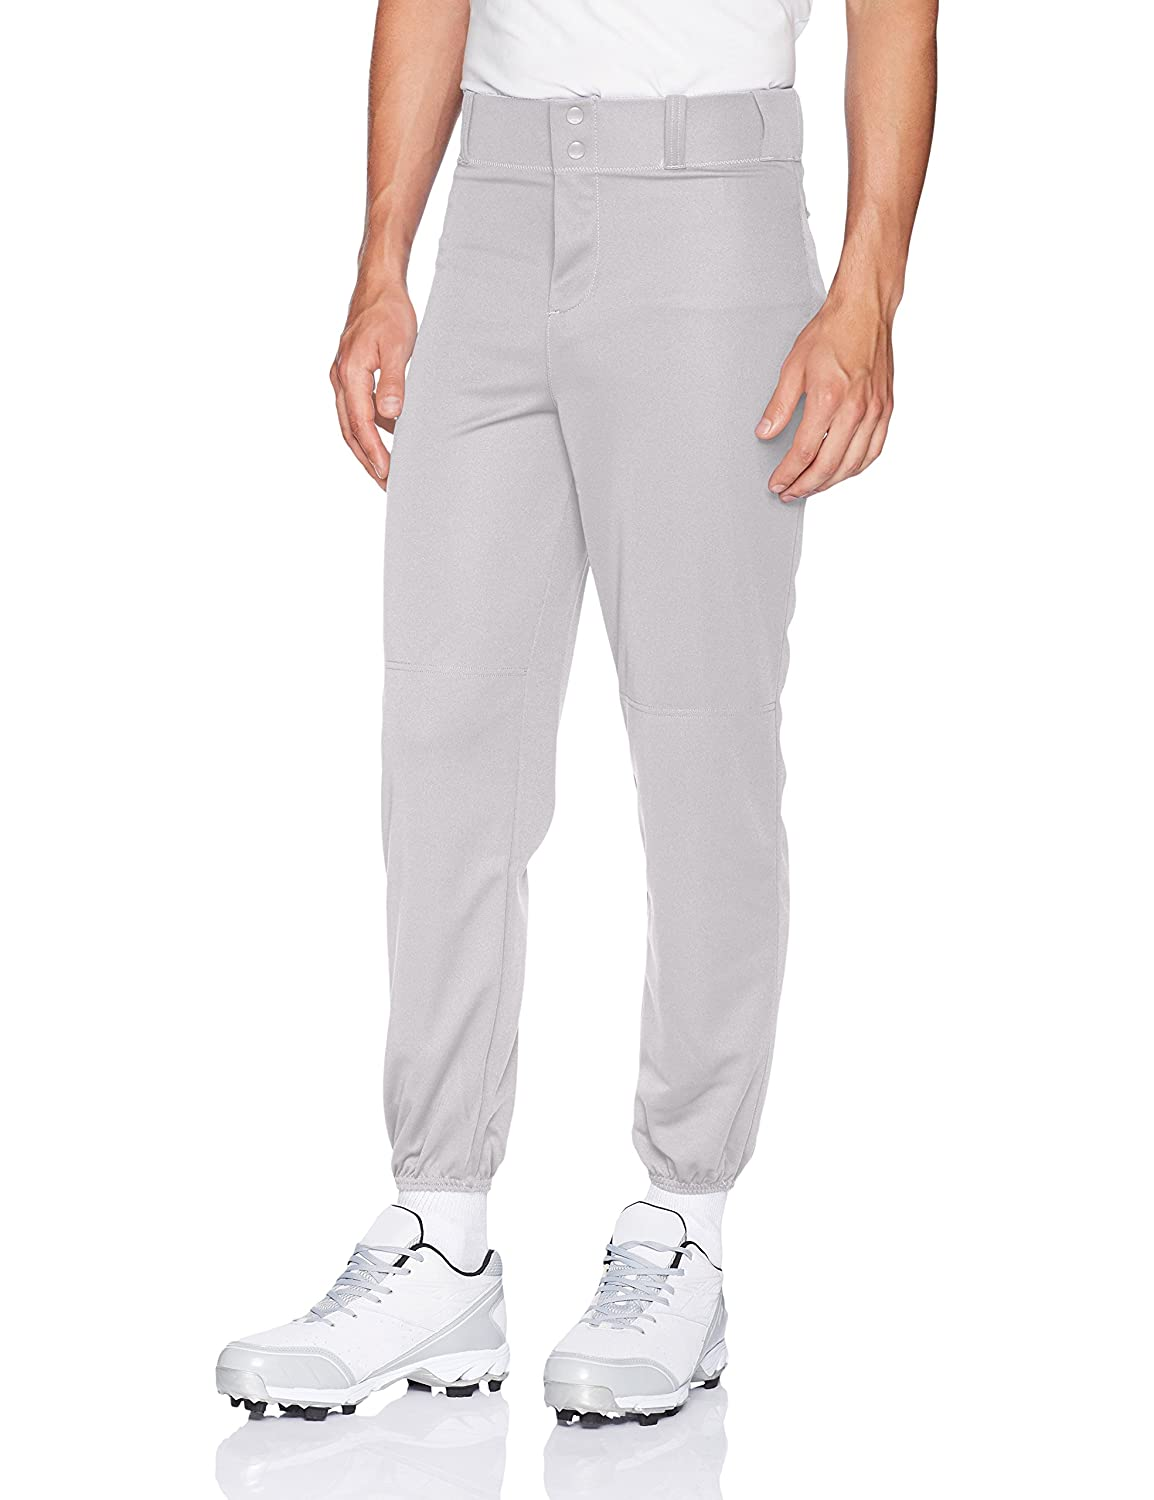 Alleson Ahtletic Men's Elastic Bottom Baseball Pants, Grey, Small Alleson Athletic (Sports) 605P